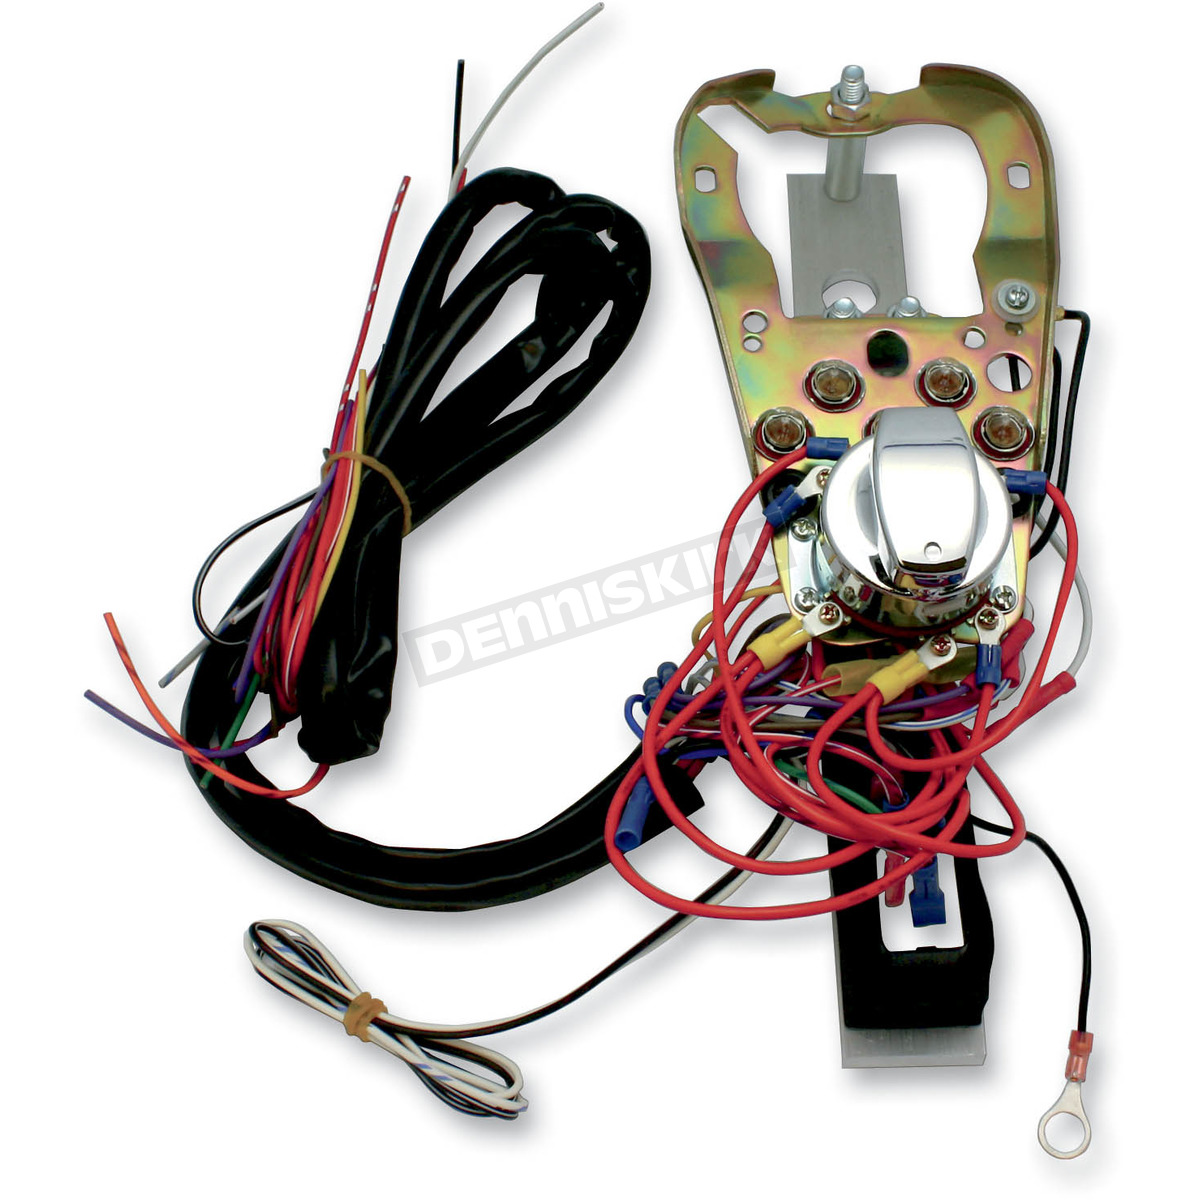 22010139 pro one dash base with wire harness kit 400909 harley davidson harley wiring harness kits at creativeand.co